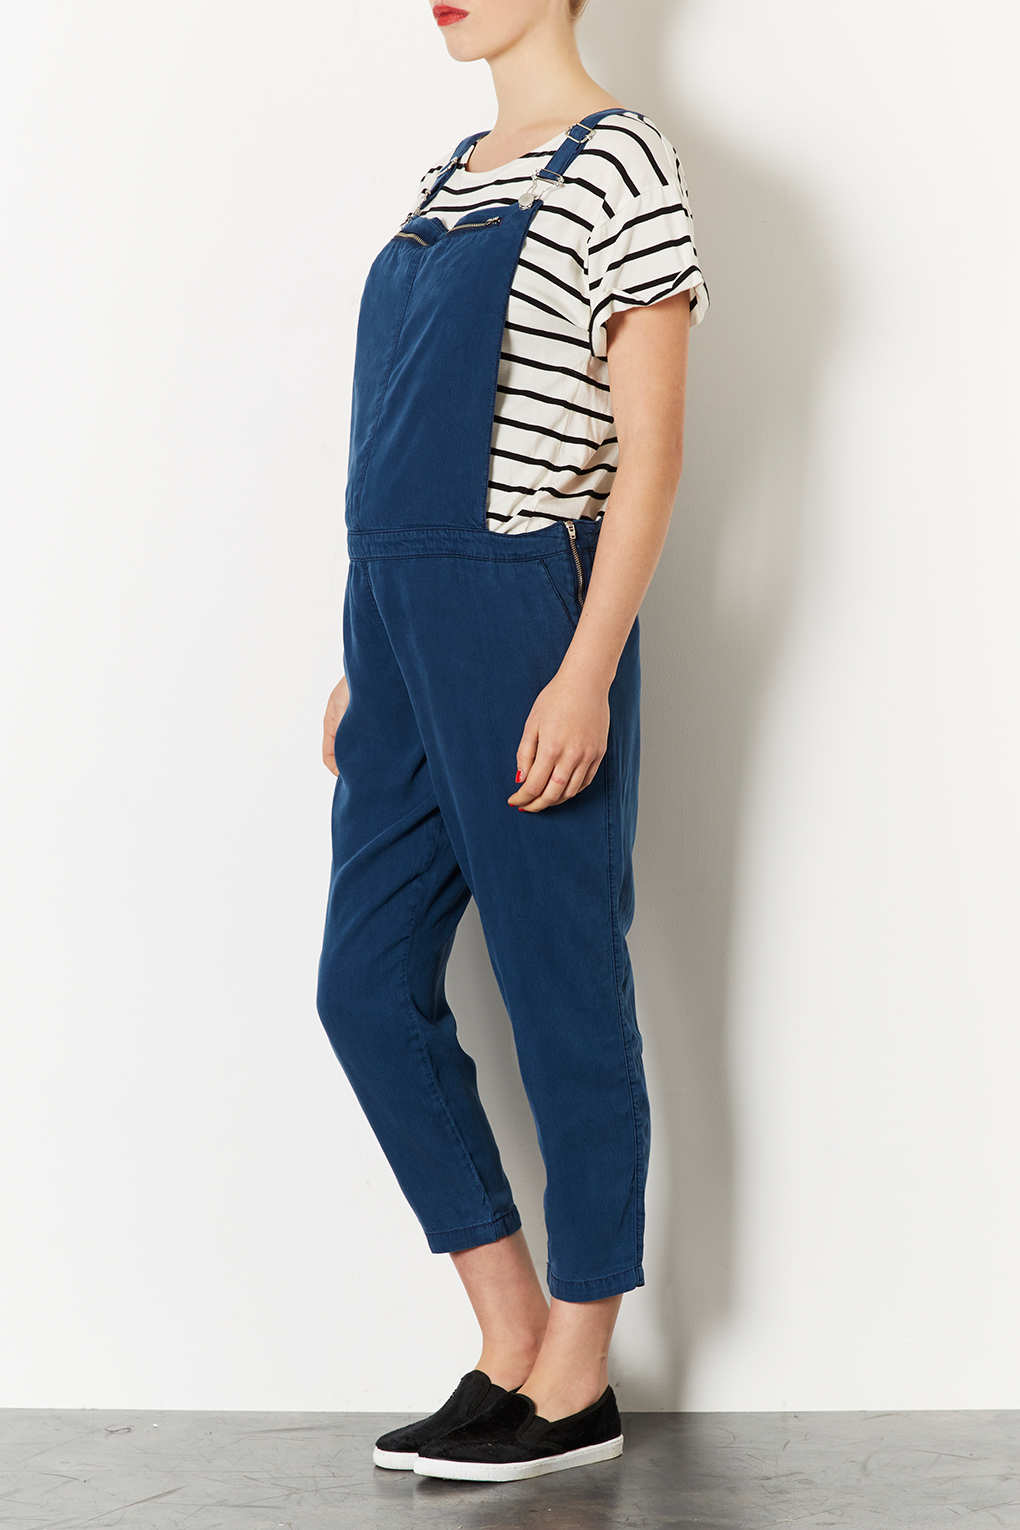 Our Mid Wash Maternity Dungarees are crafted from cotton rich denim with a hint of stretch, designed to offer the perfect fit as your body changes. The skinny-cut leg keeps the look fresh and modern, with pockets to the front and back to flatter.